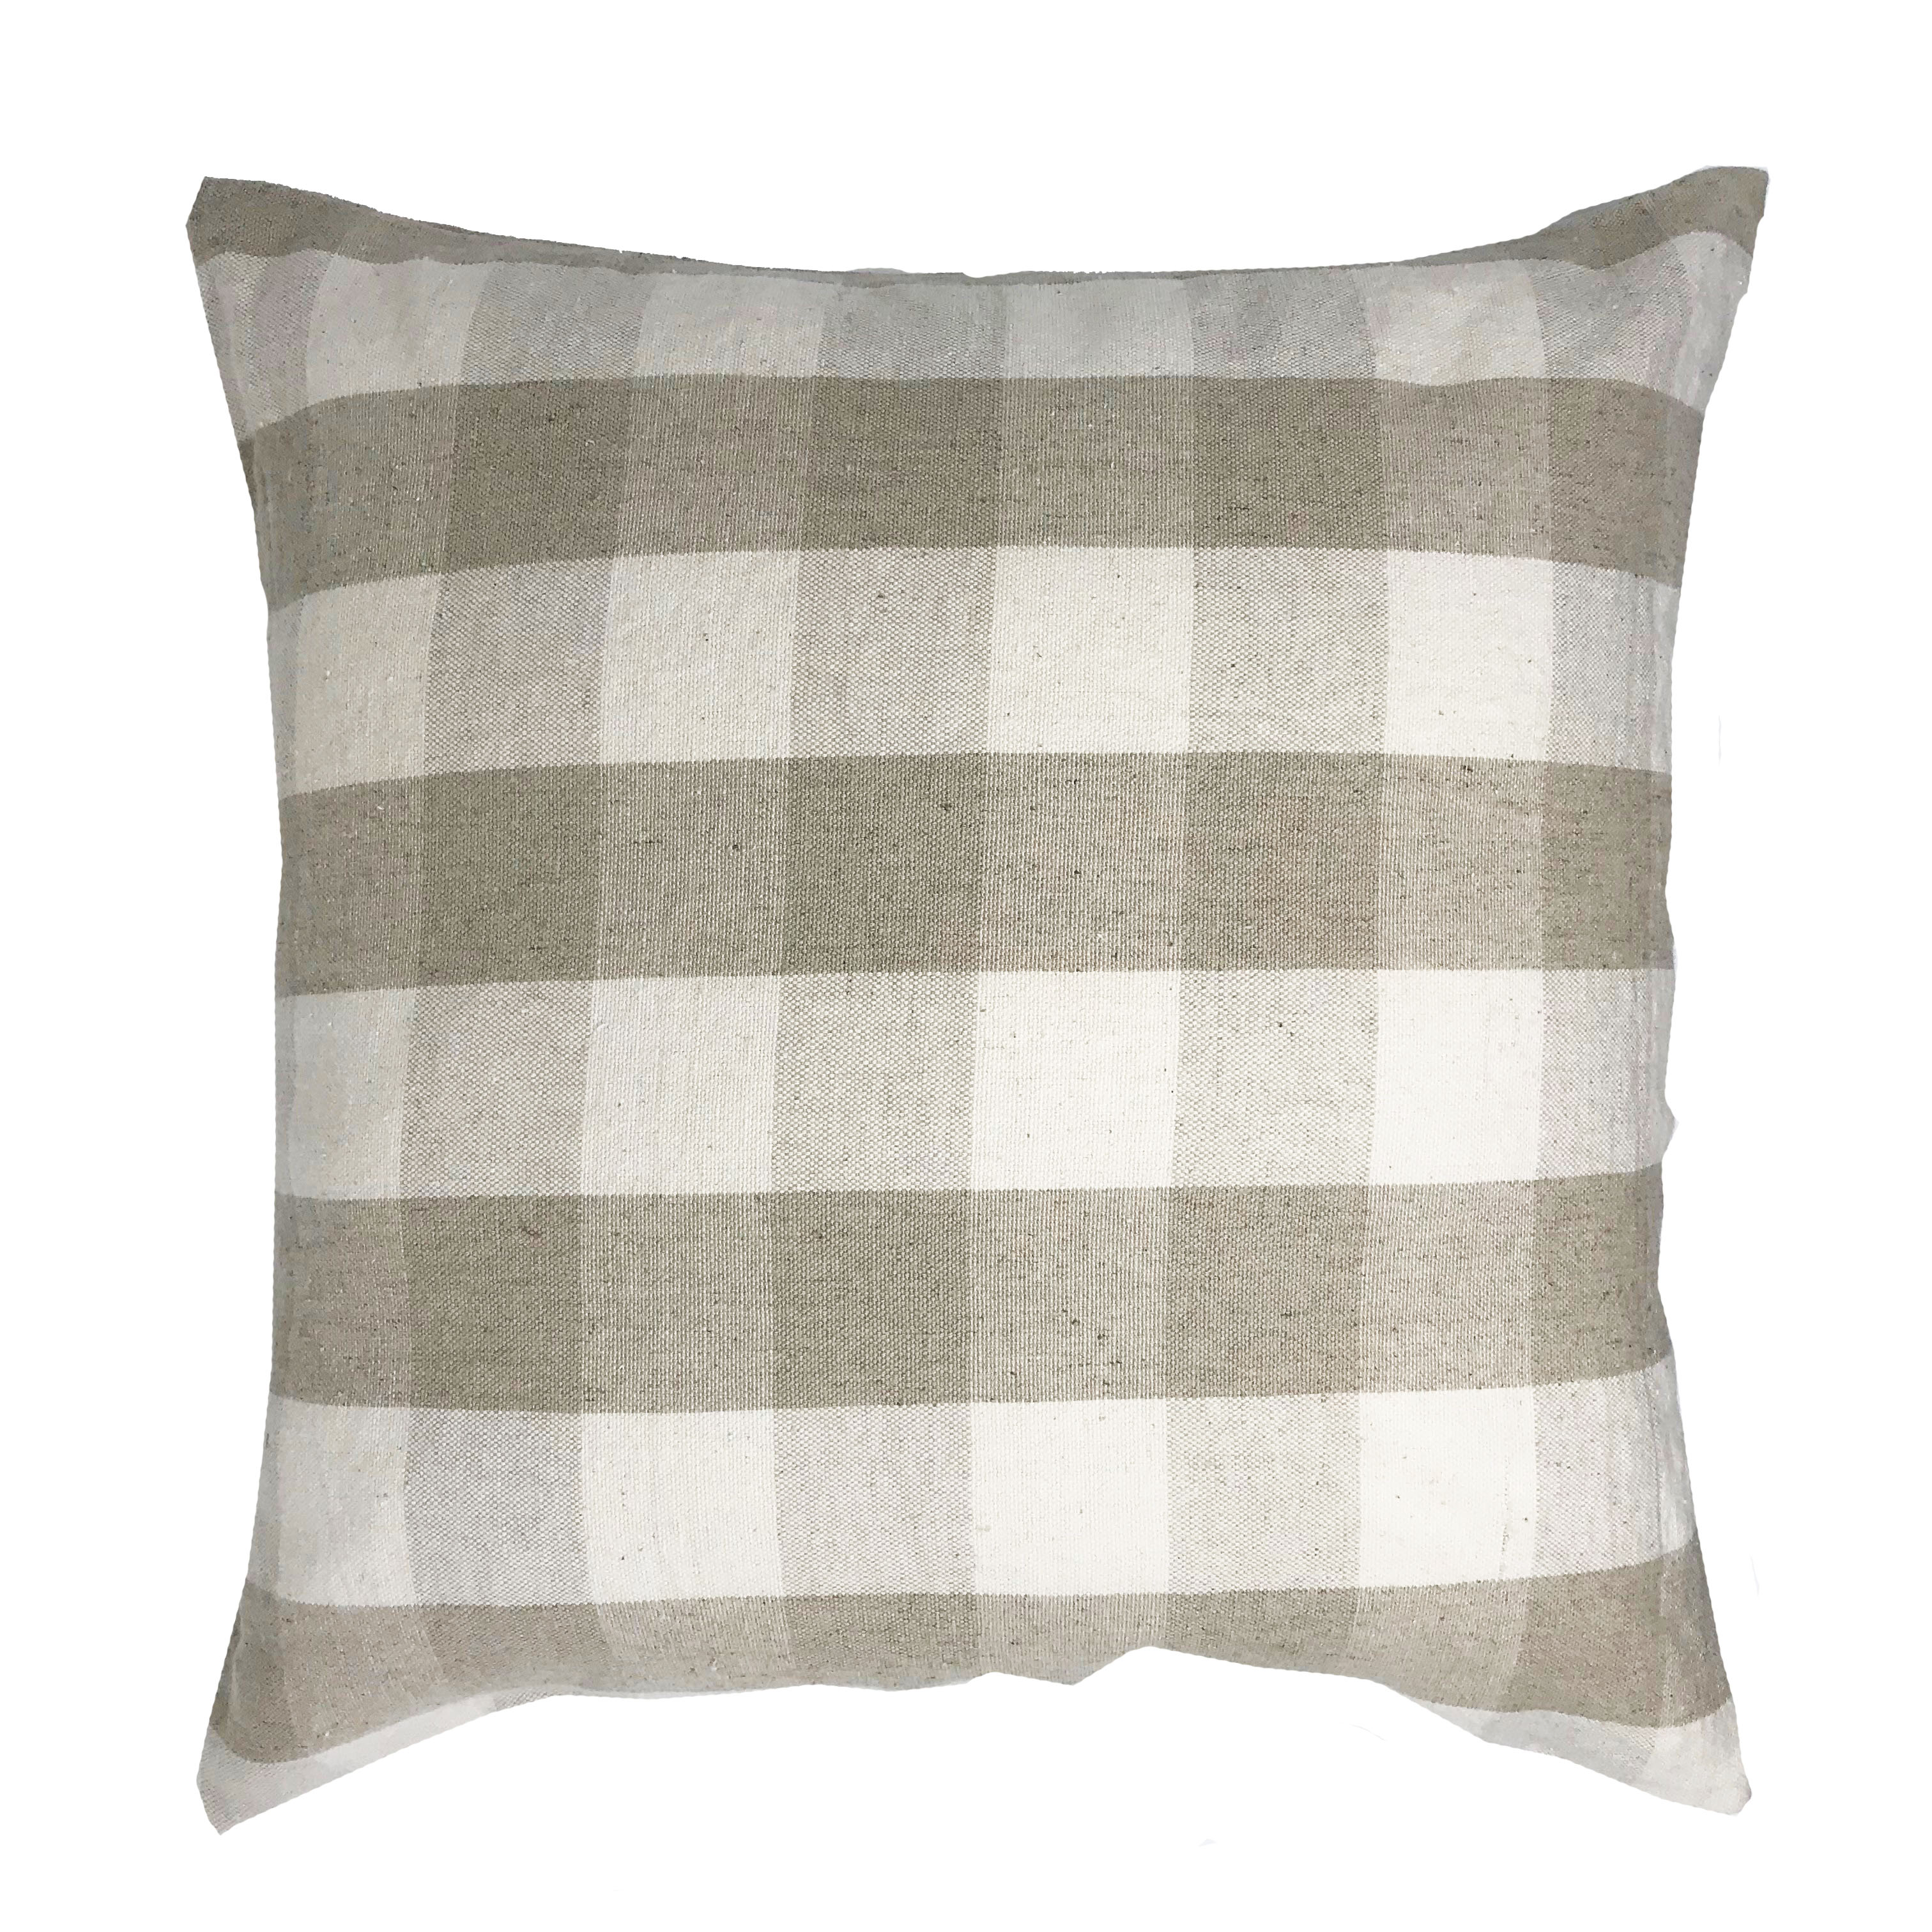 Natural Colour Tartan Check Chekers 45cm x 45cm Cushion Cover Only